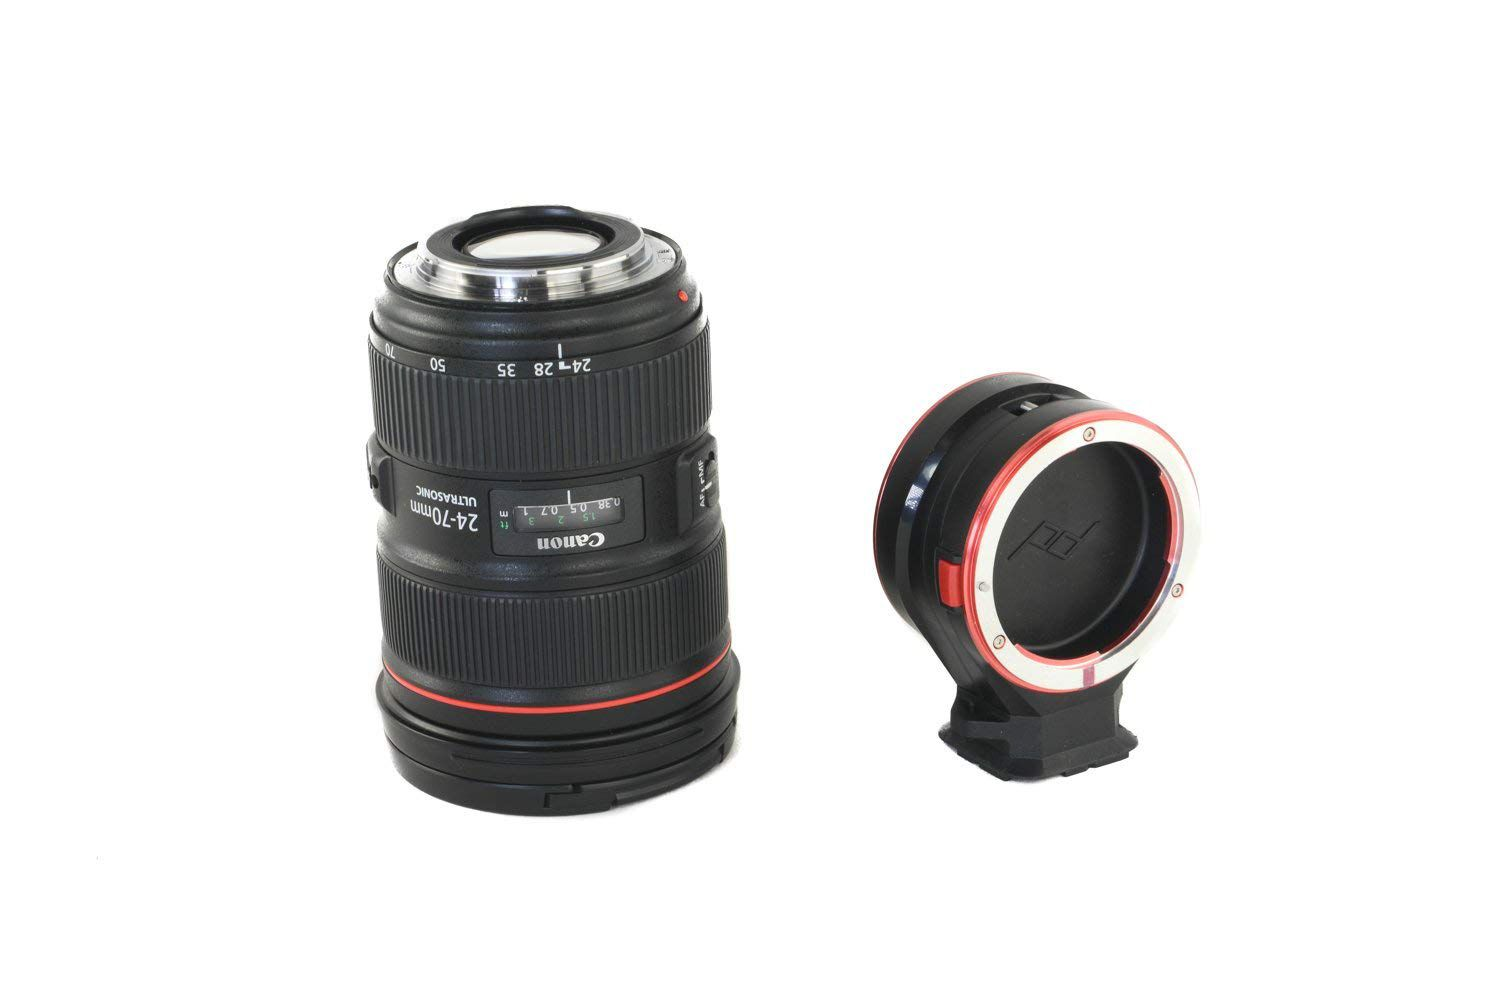 Kit de lente de captura Peak Design – Canon